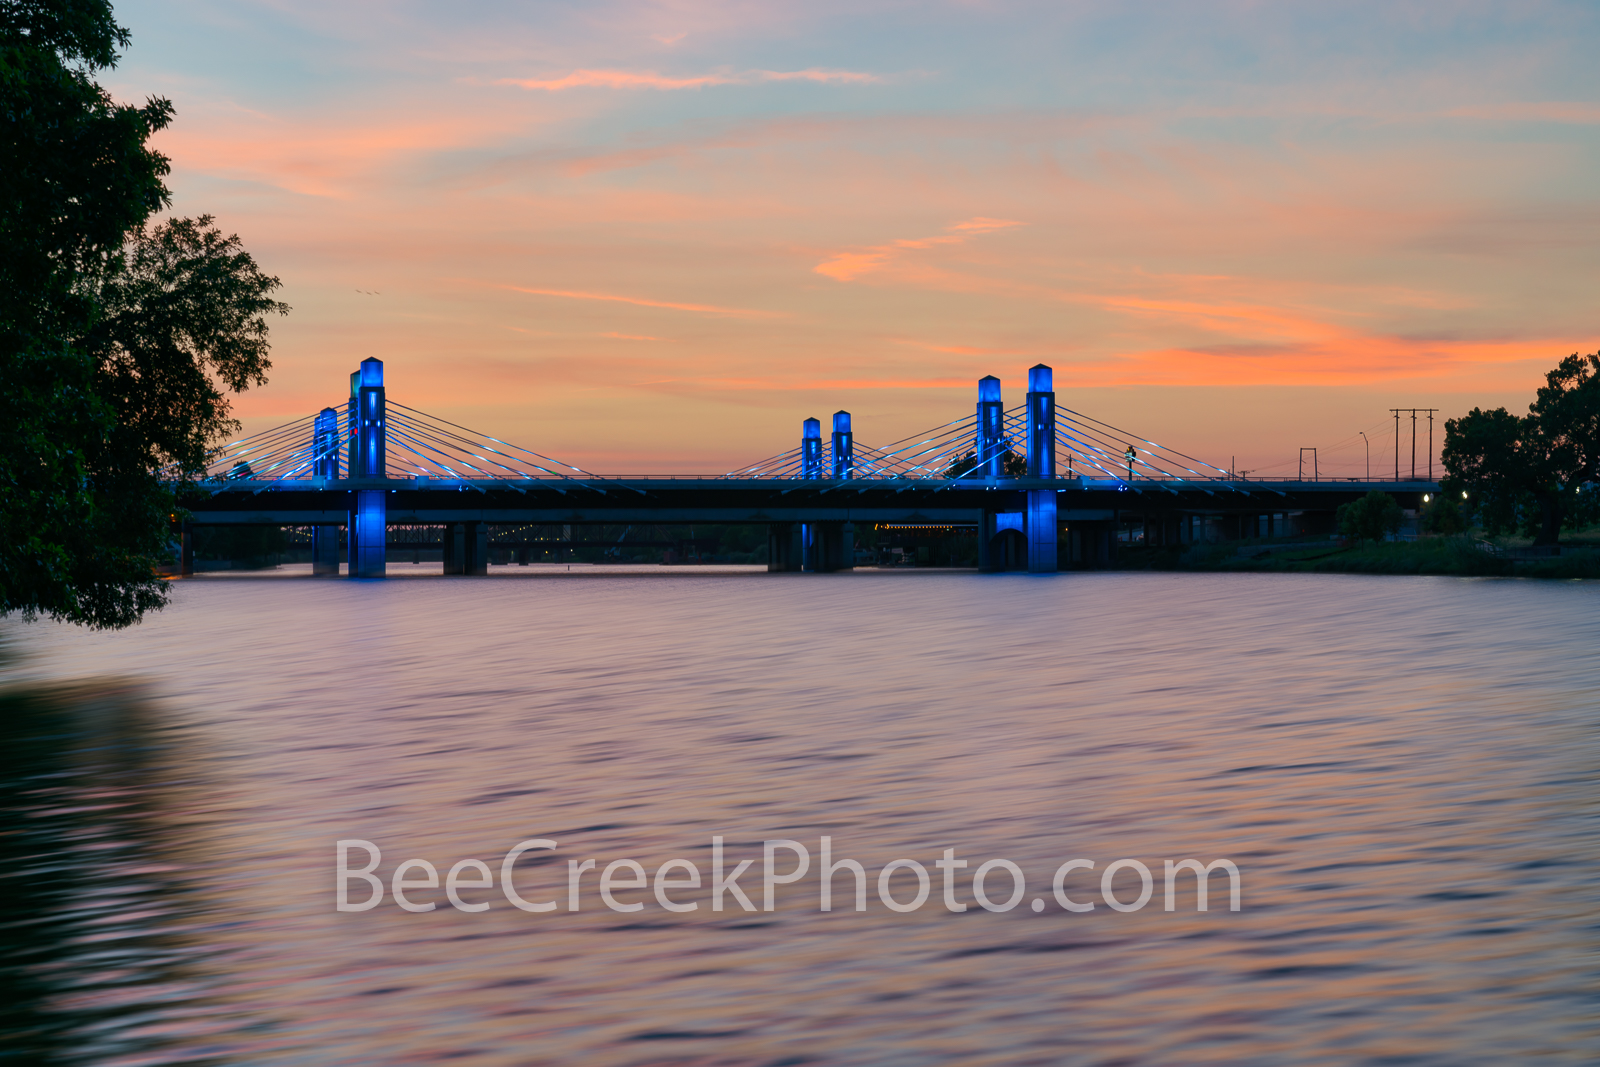 Waco, Brazos River. bridge, sunset, downtown, IH35, stay bridge, colorful led, texas, landscape, america, texas river, scenic, scenic landscape, Texas landscape,, photo